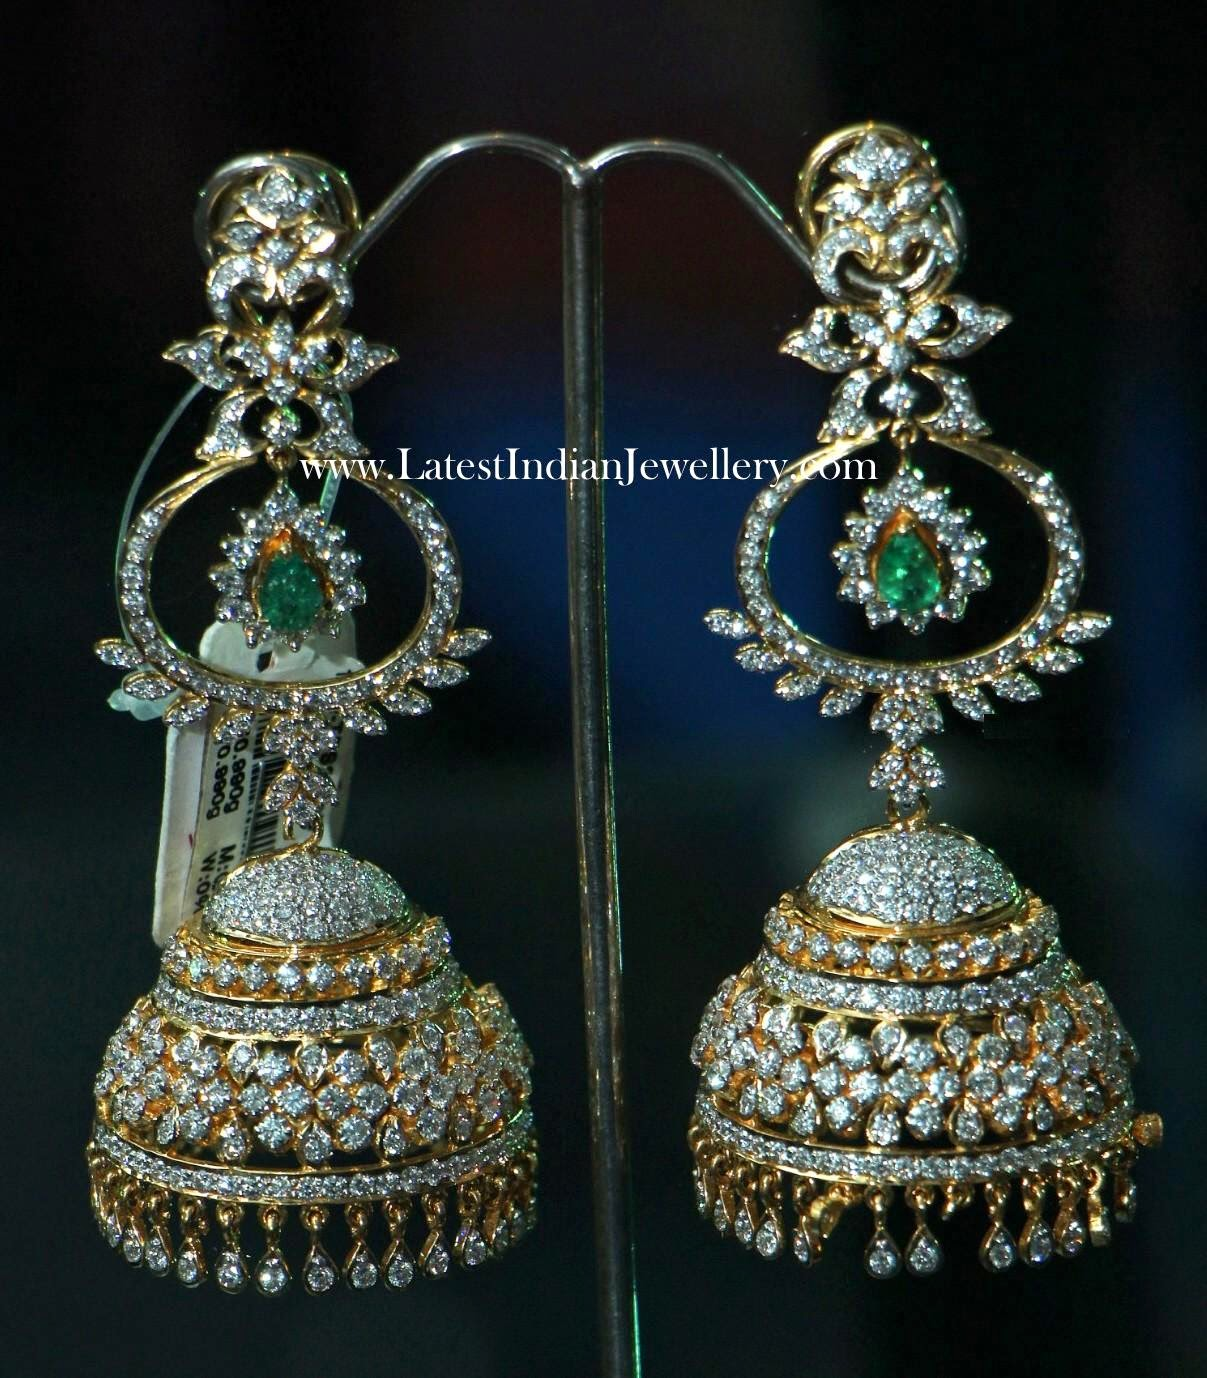 Grand Diamond Jhumka Earrings